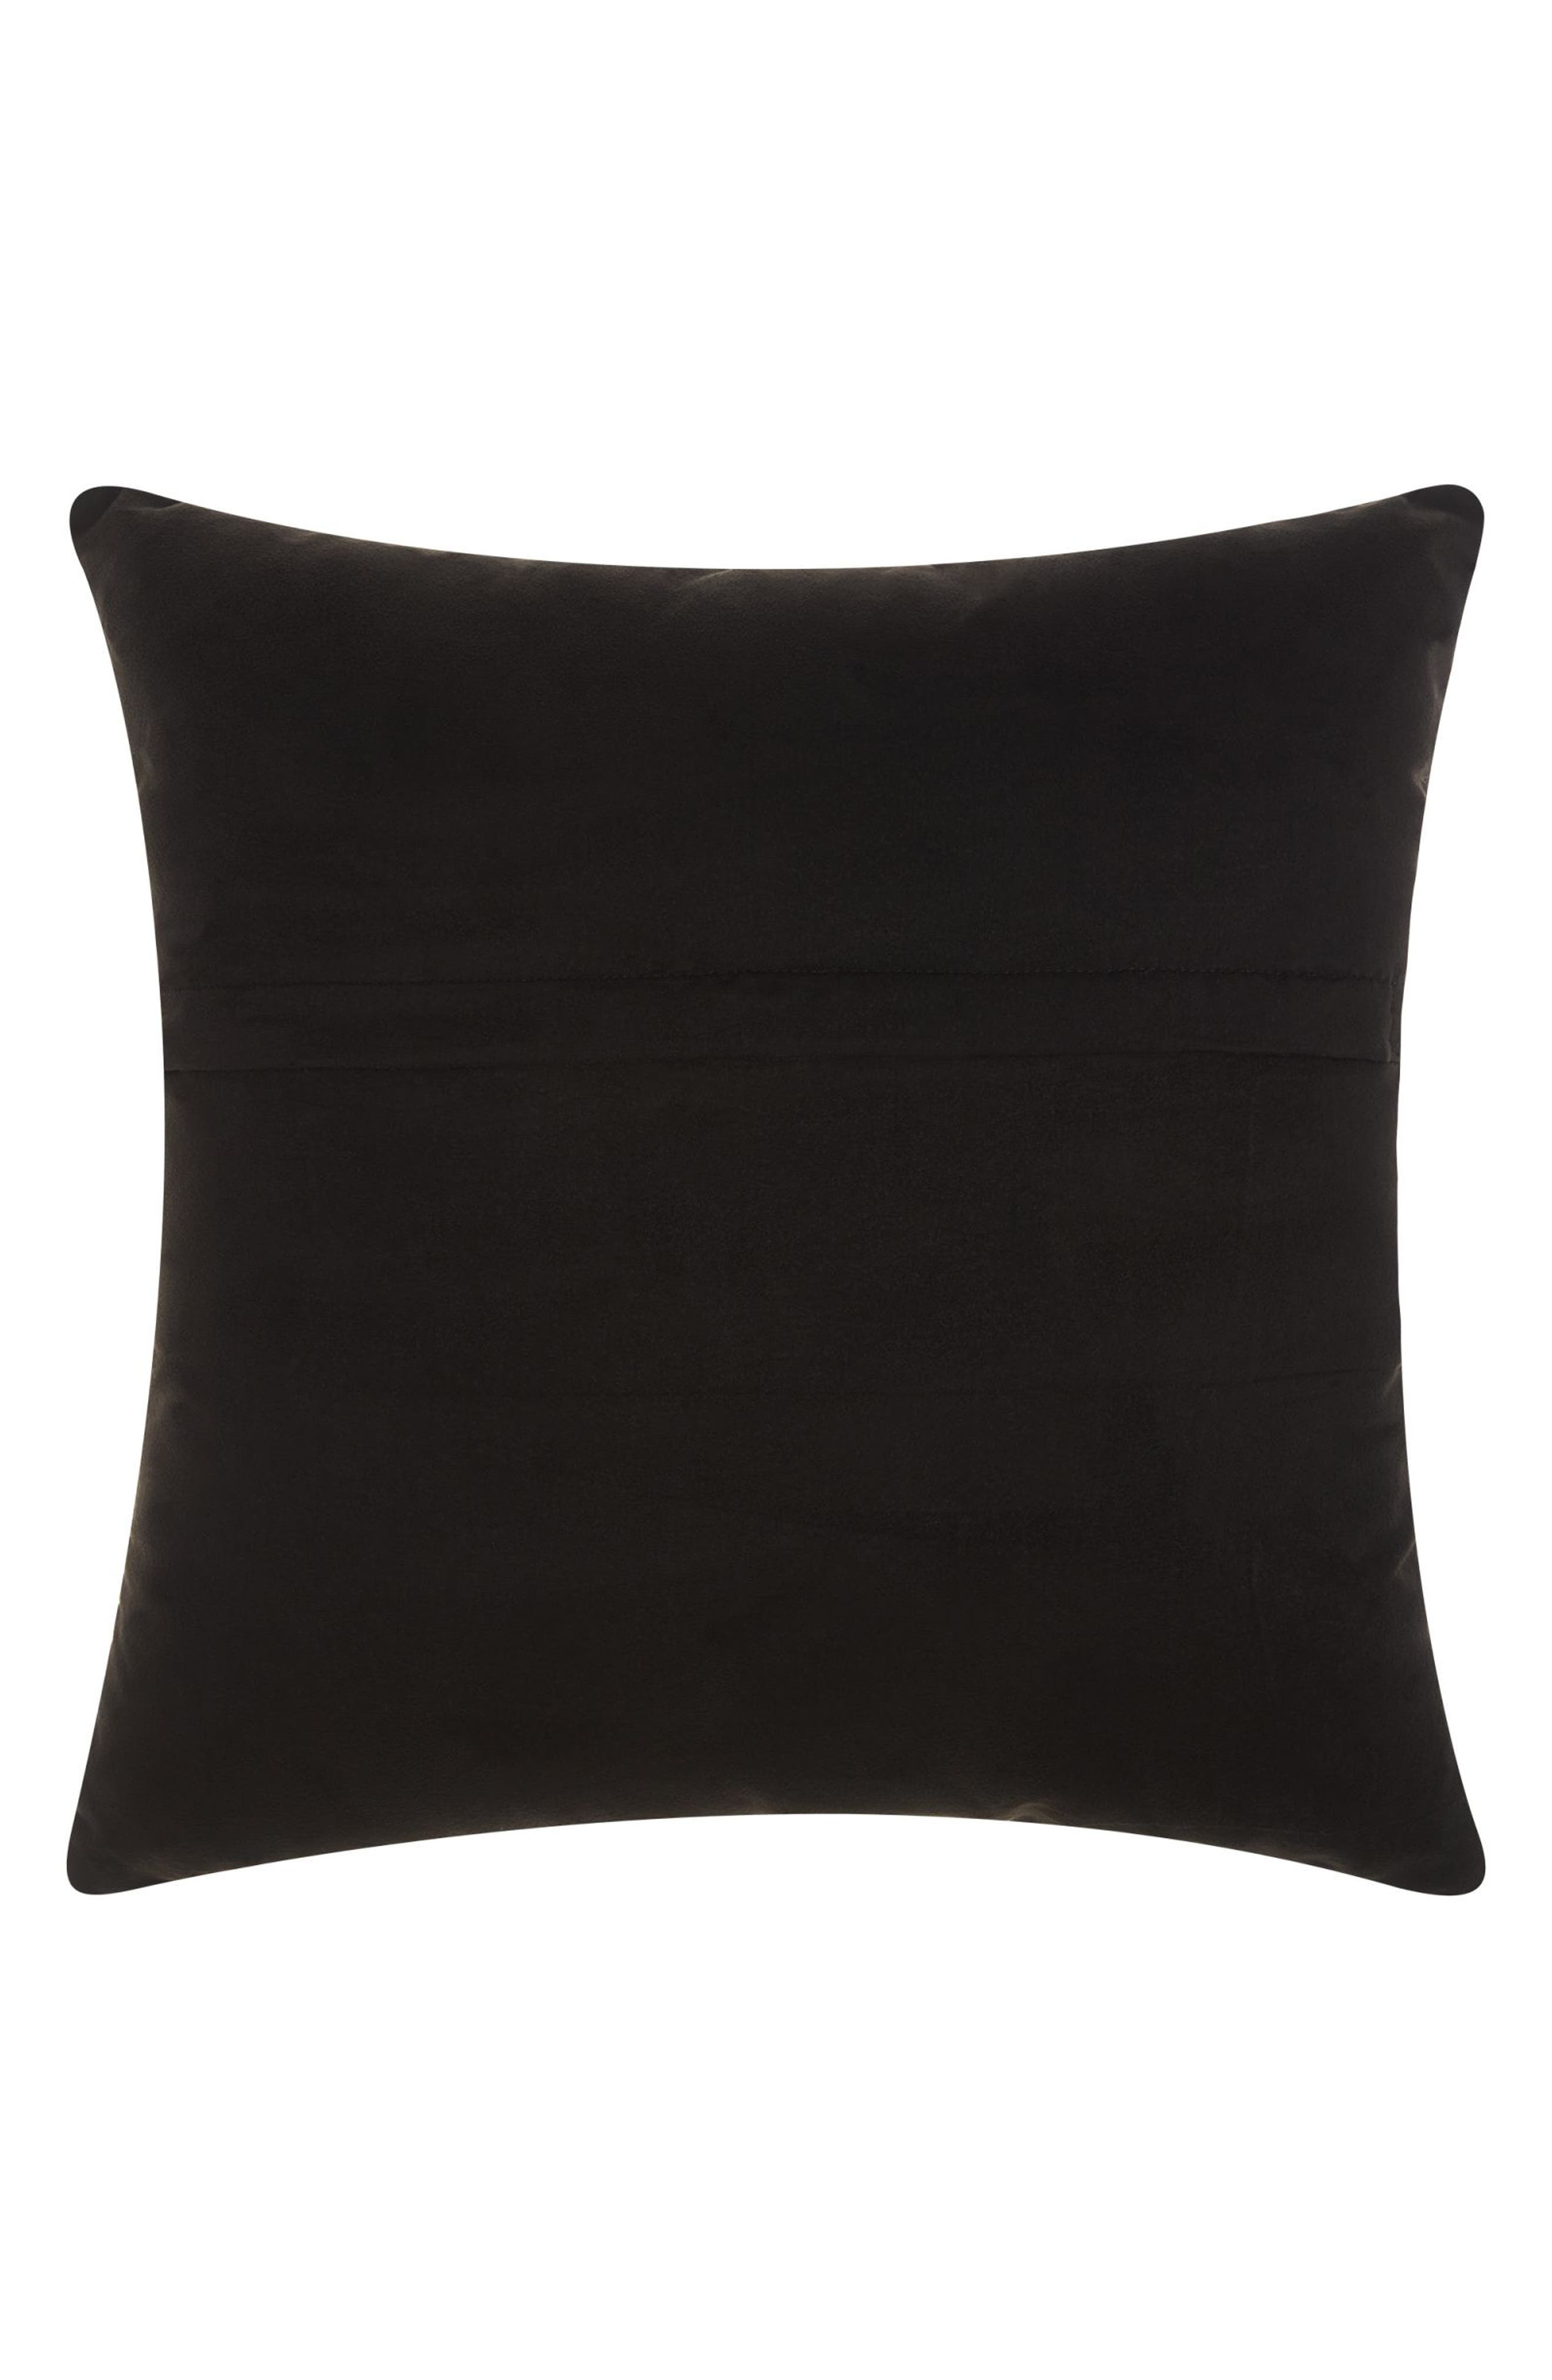 Woven Leather Accent Pillow,                             Alternate thumbnail 2, color,                             002